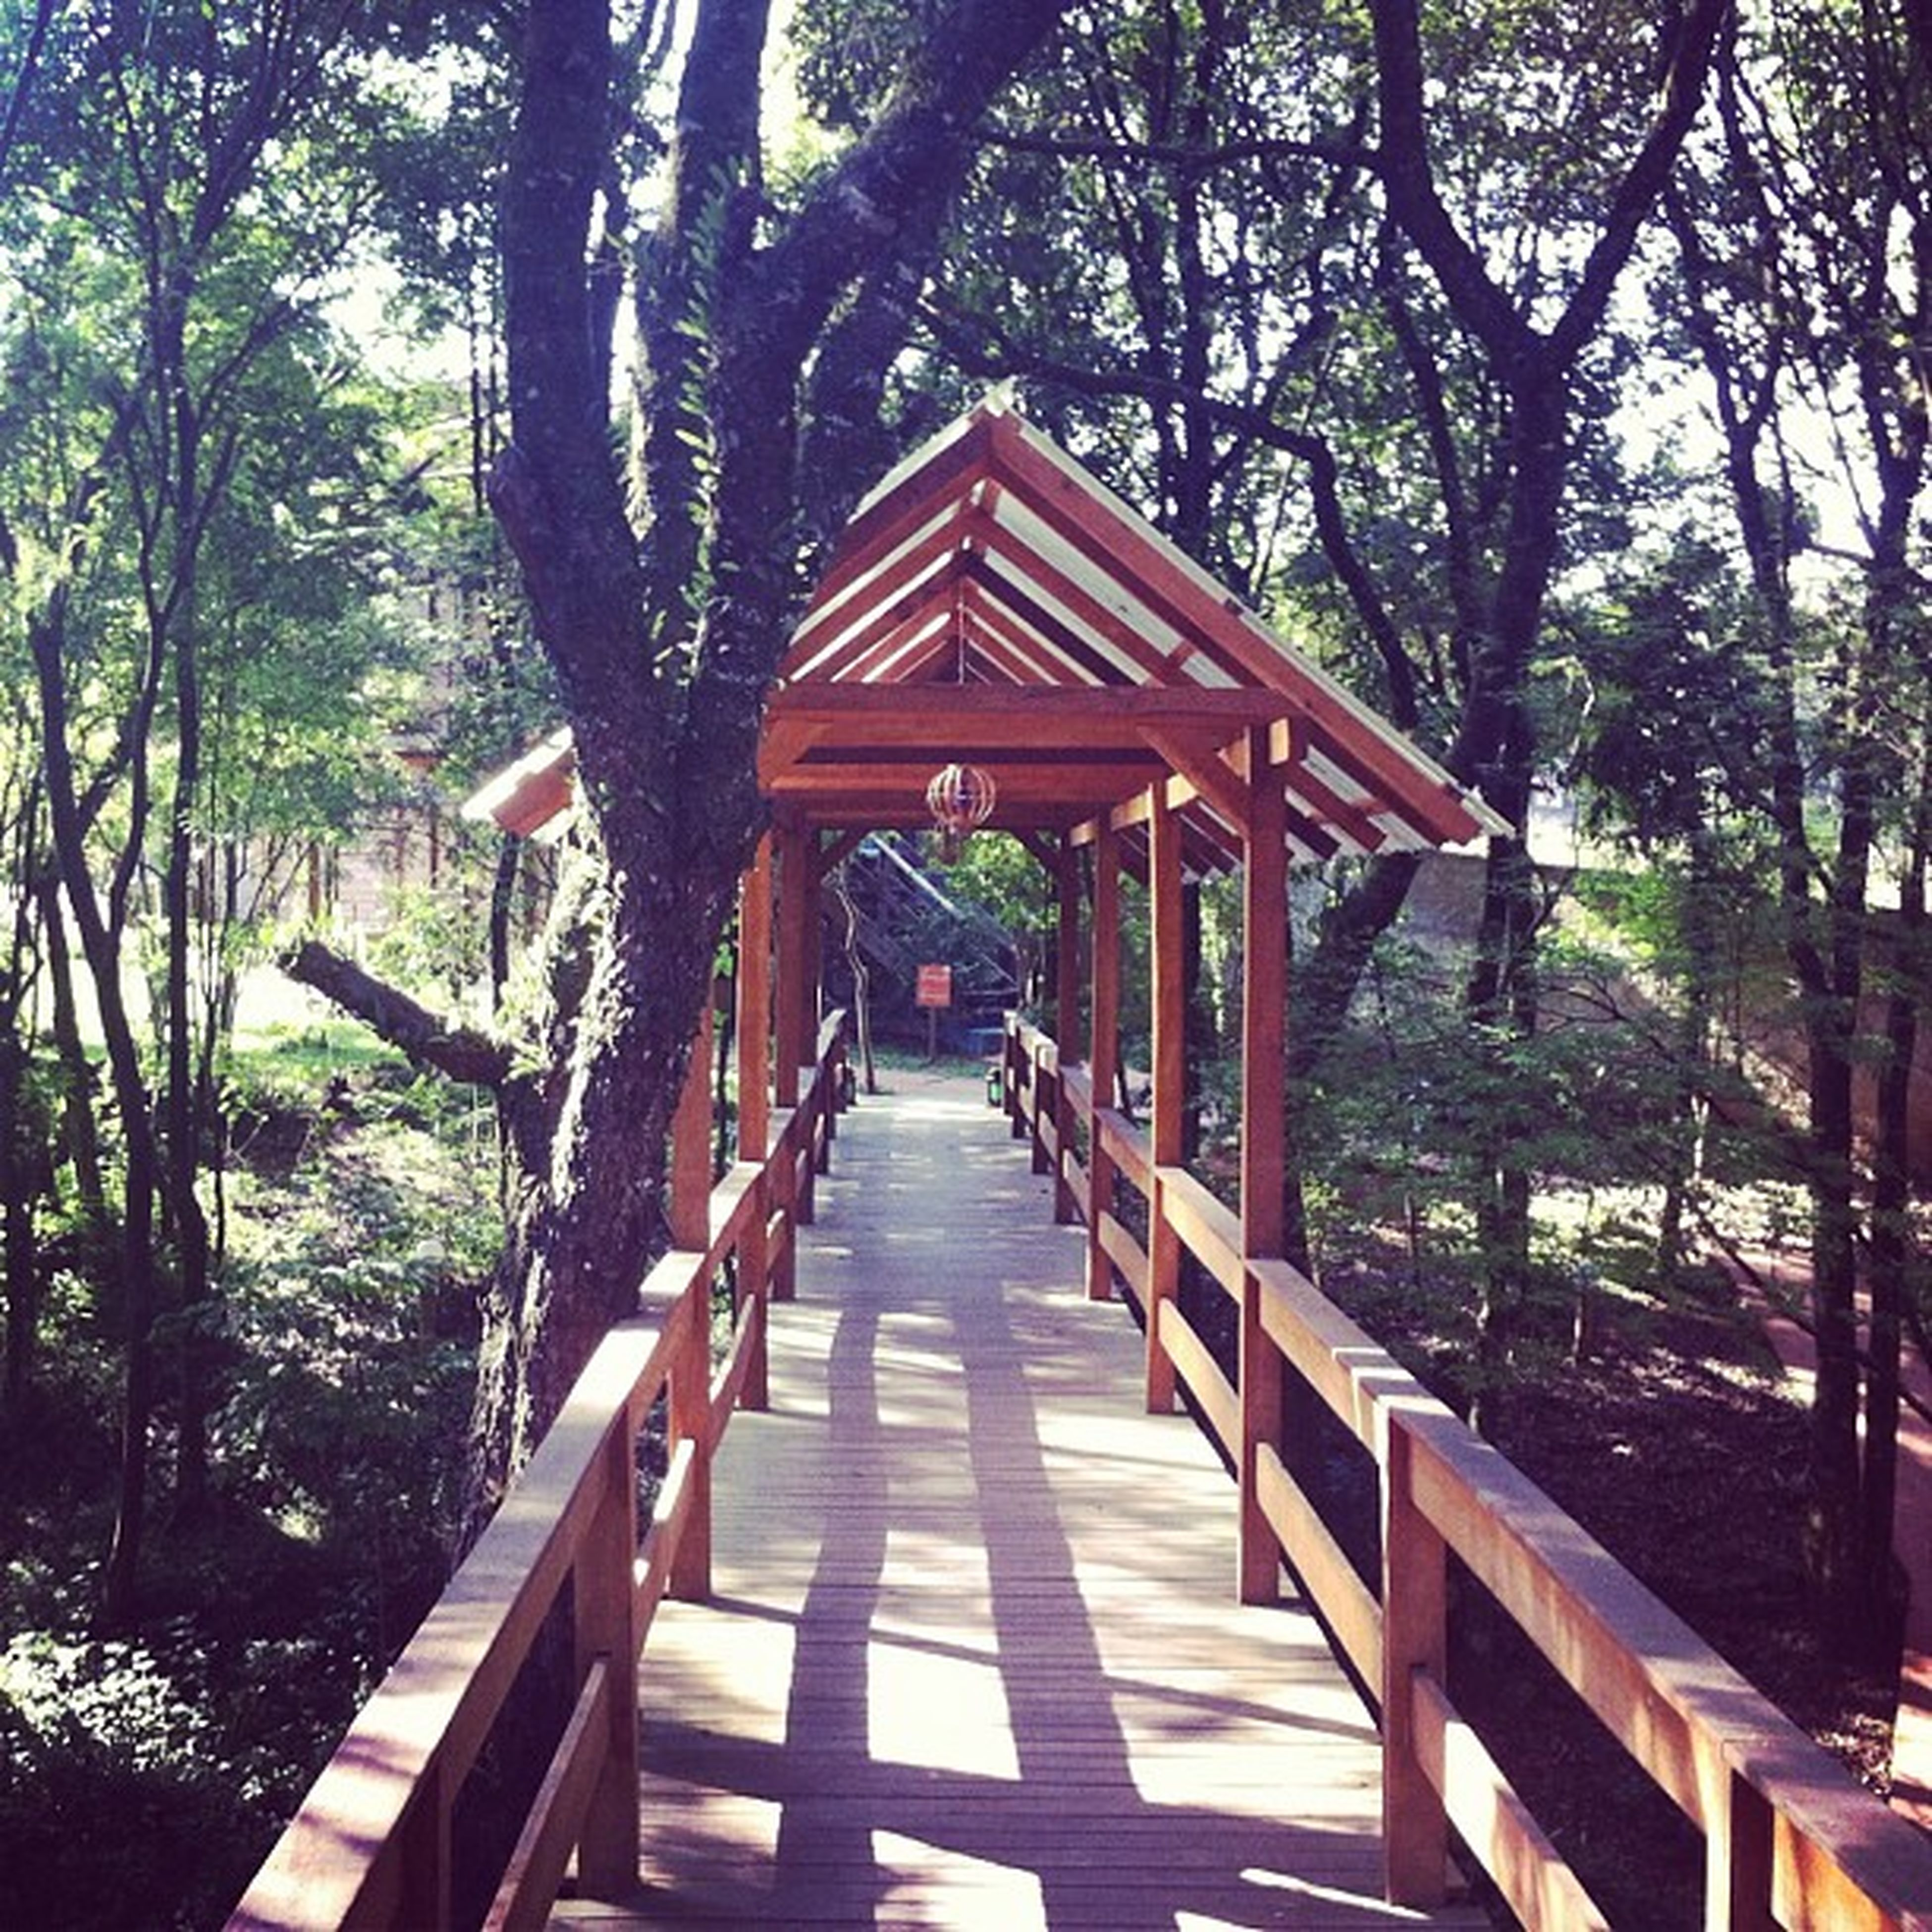 tree, built structure, architecture, railing, footbridge, wood - material, the way forward, connection, forest, bridge - man made structure, growth, day, tranquility, nature, outdoors, building exterior, branch, no people, wooden, sunlight